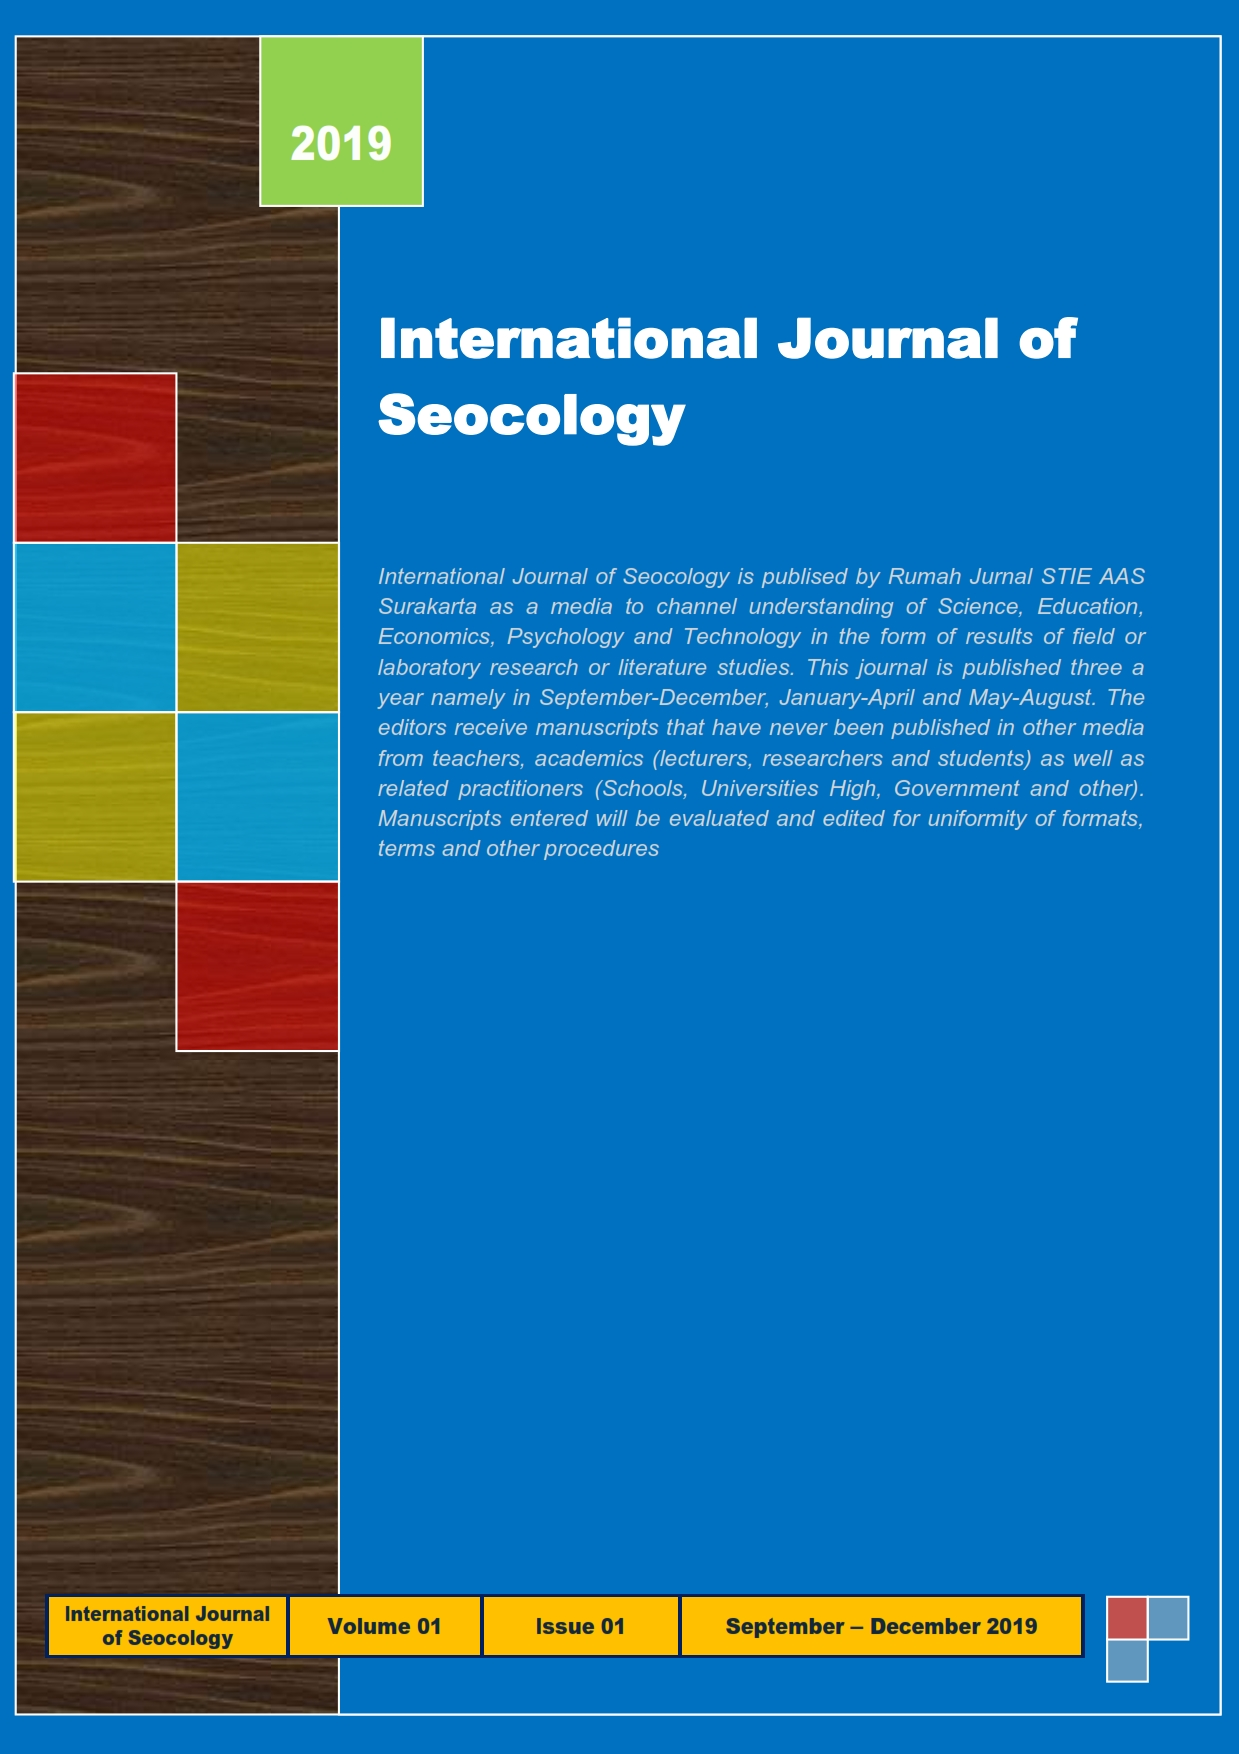 The Management Of Physical Evidence And Chain Of Custody Coc In Digital Forensic Laboratory Storage International Journal Of Seocology